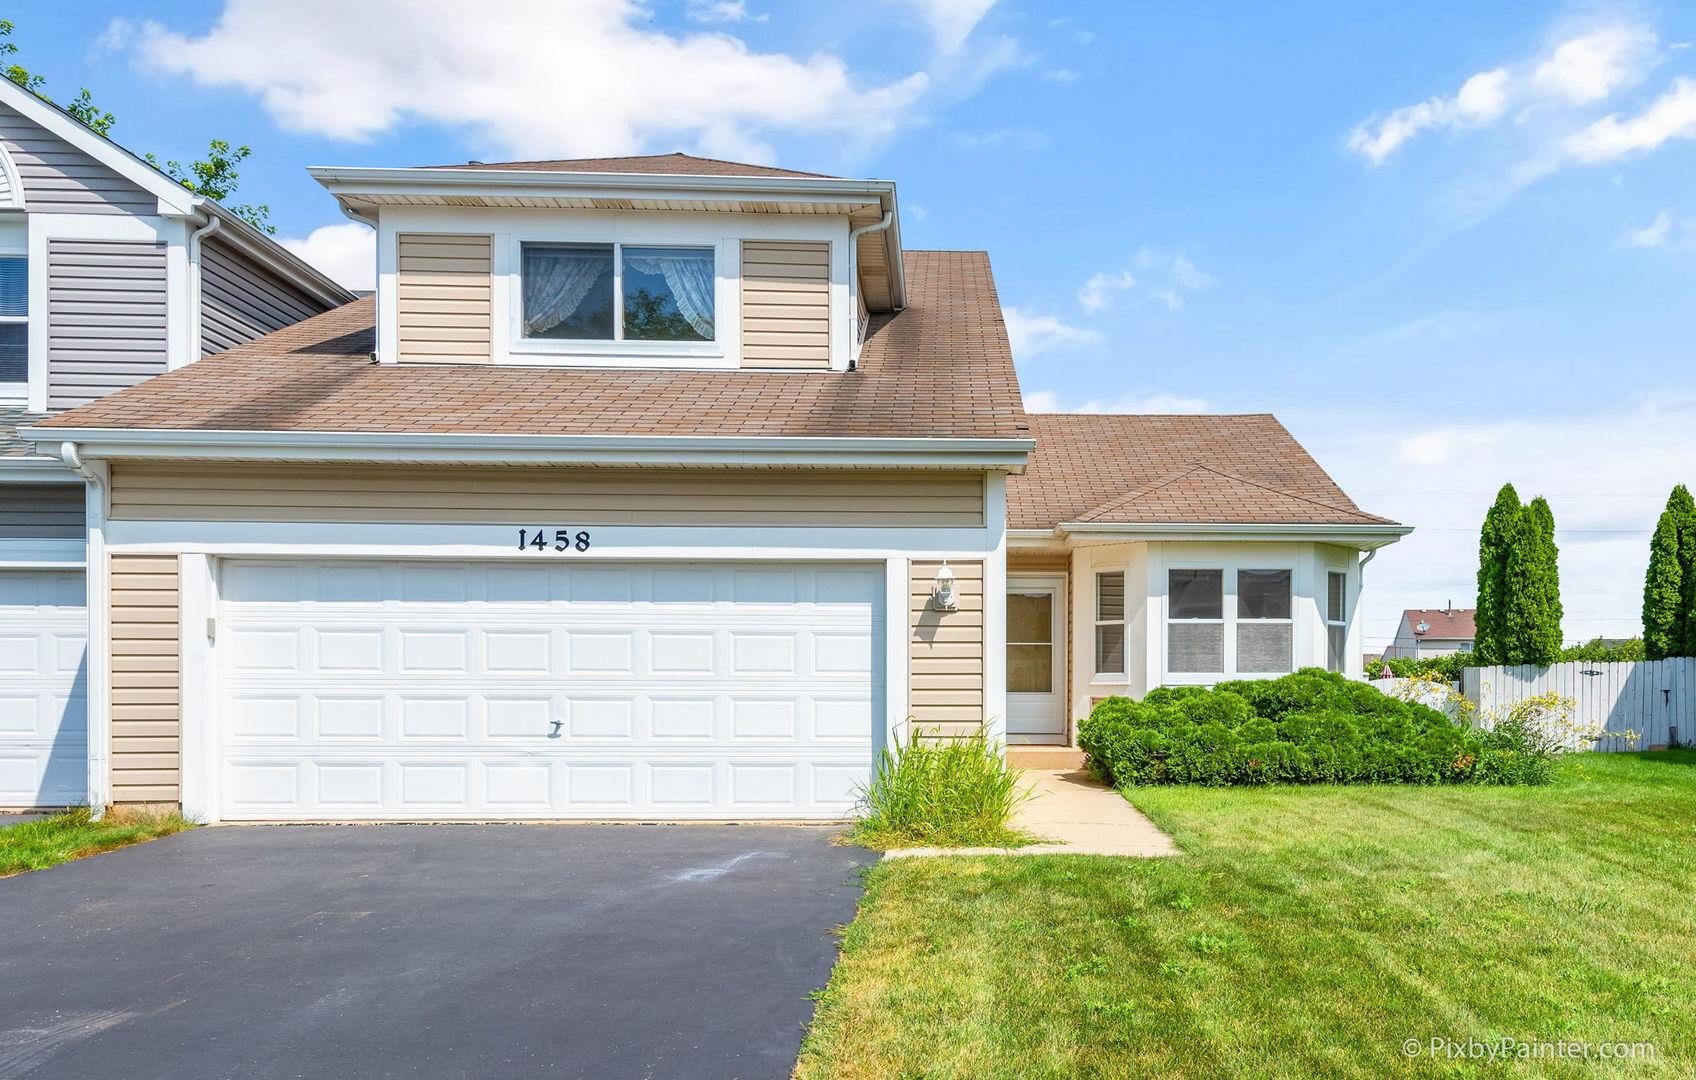 1458 N Pembroke Drive, South Elgin, IL 60177 - #: 10810699